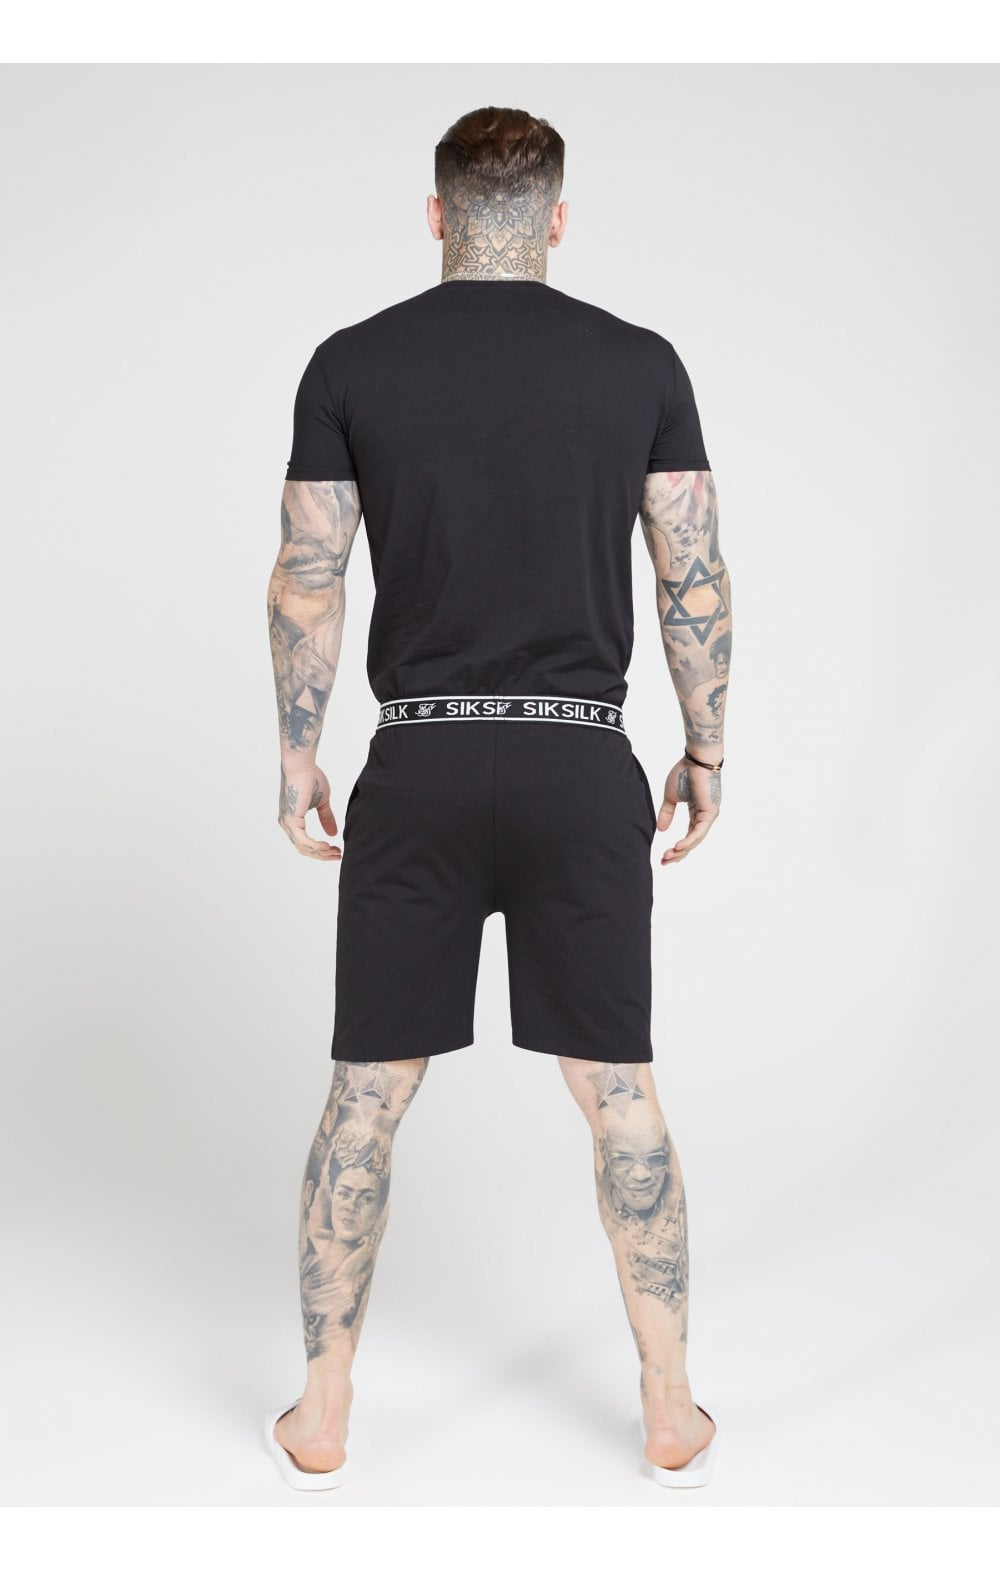 SikSilk Lounge Tee - Black & Grey (2 Pack) - 1 Grey Tee & 1 Black Tee (2)